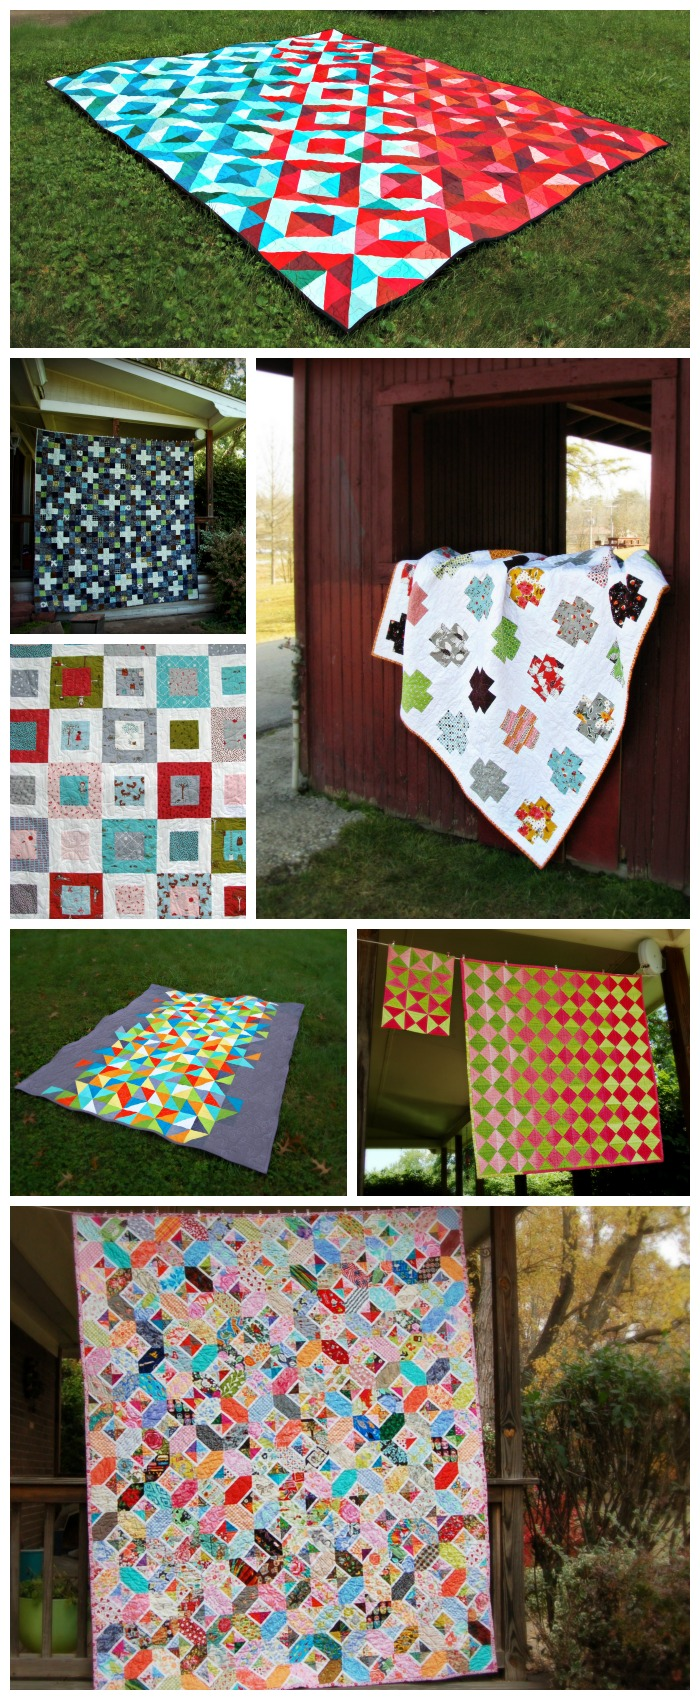 The Quilts of 2013